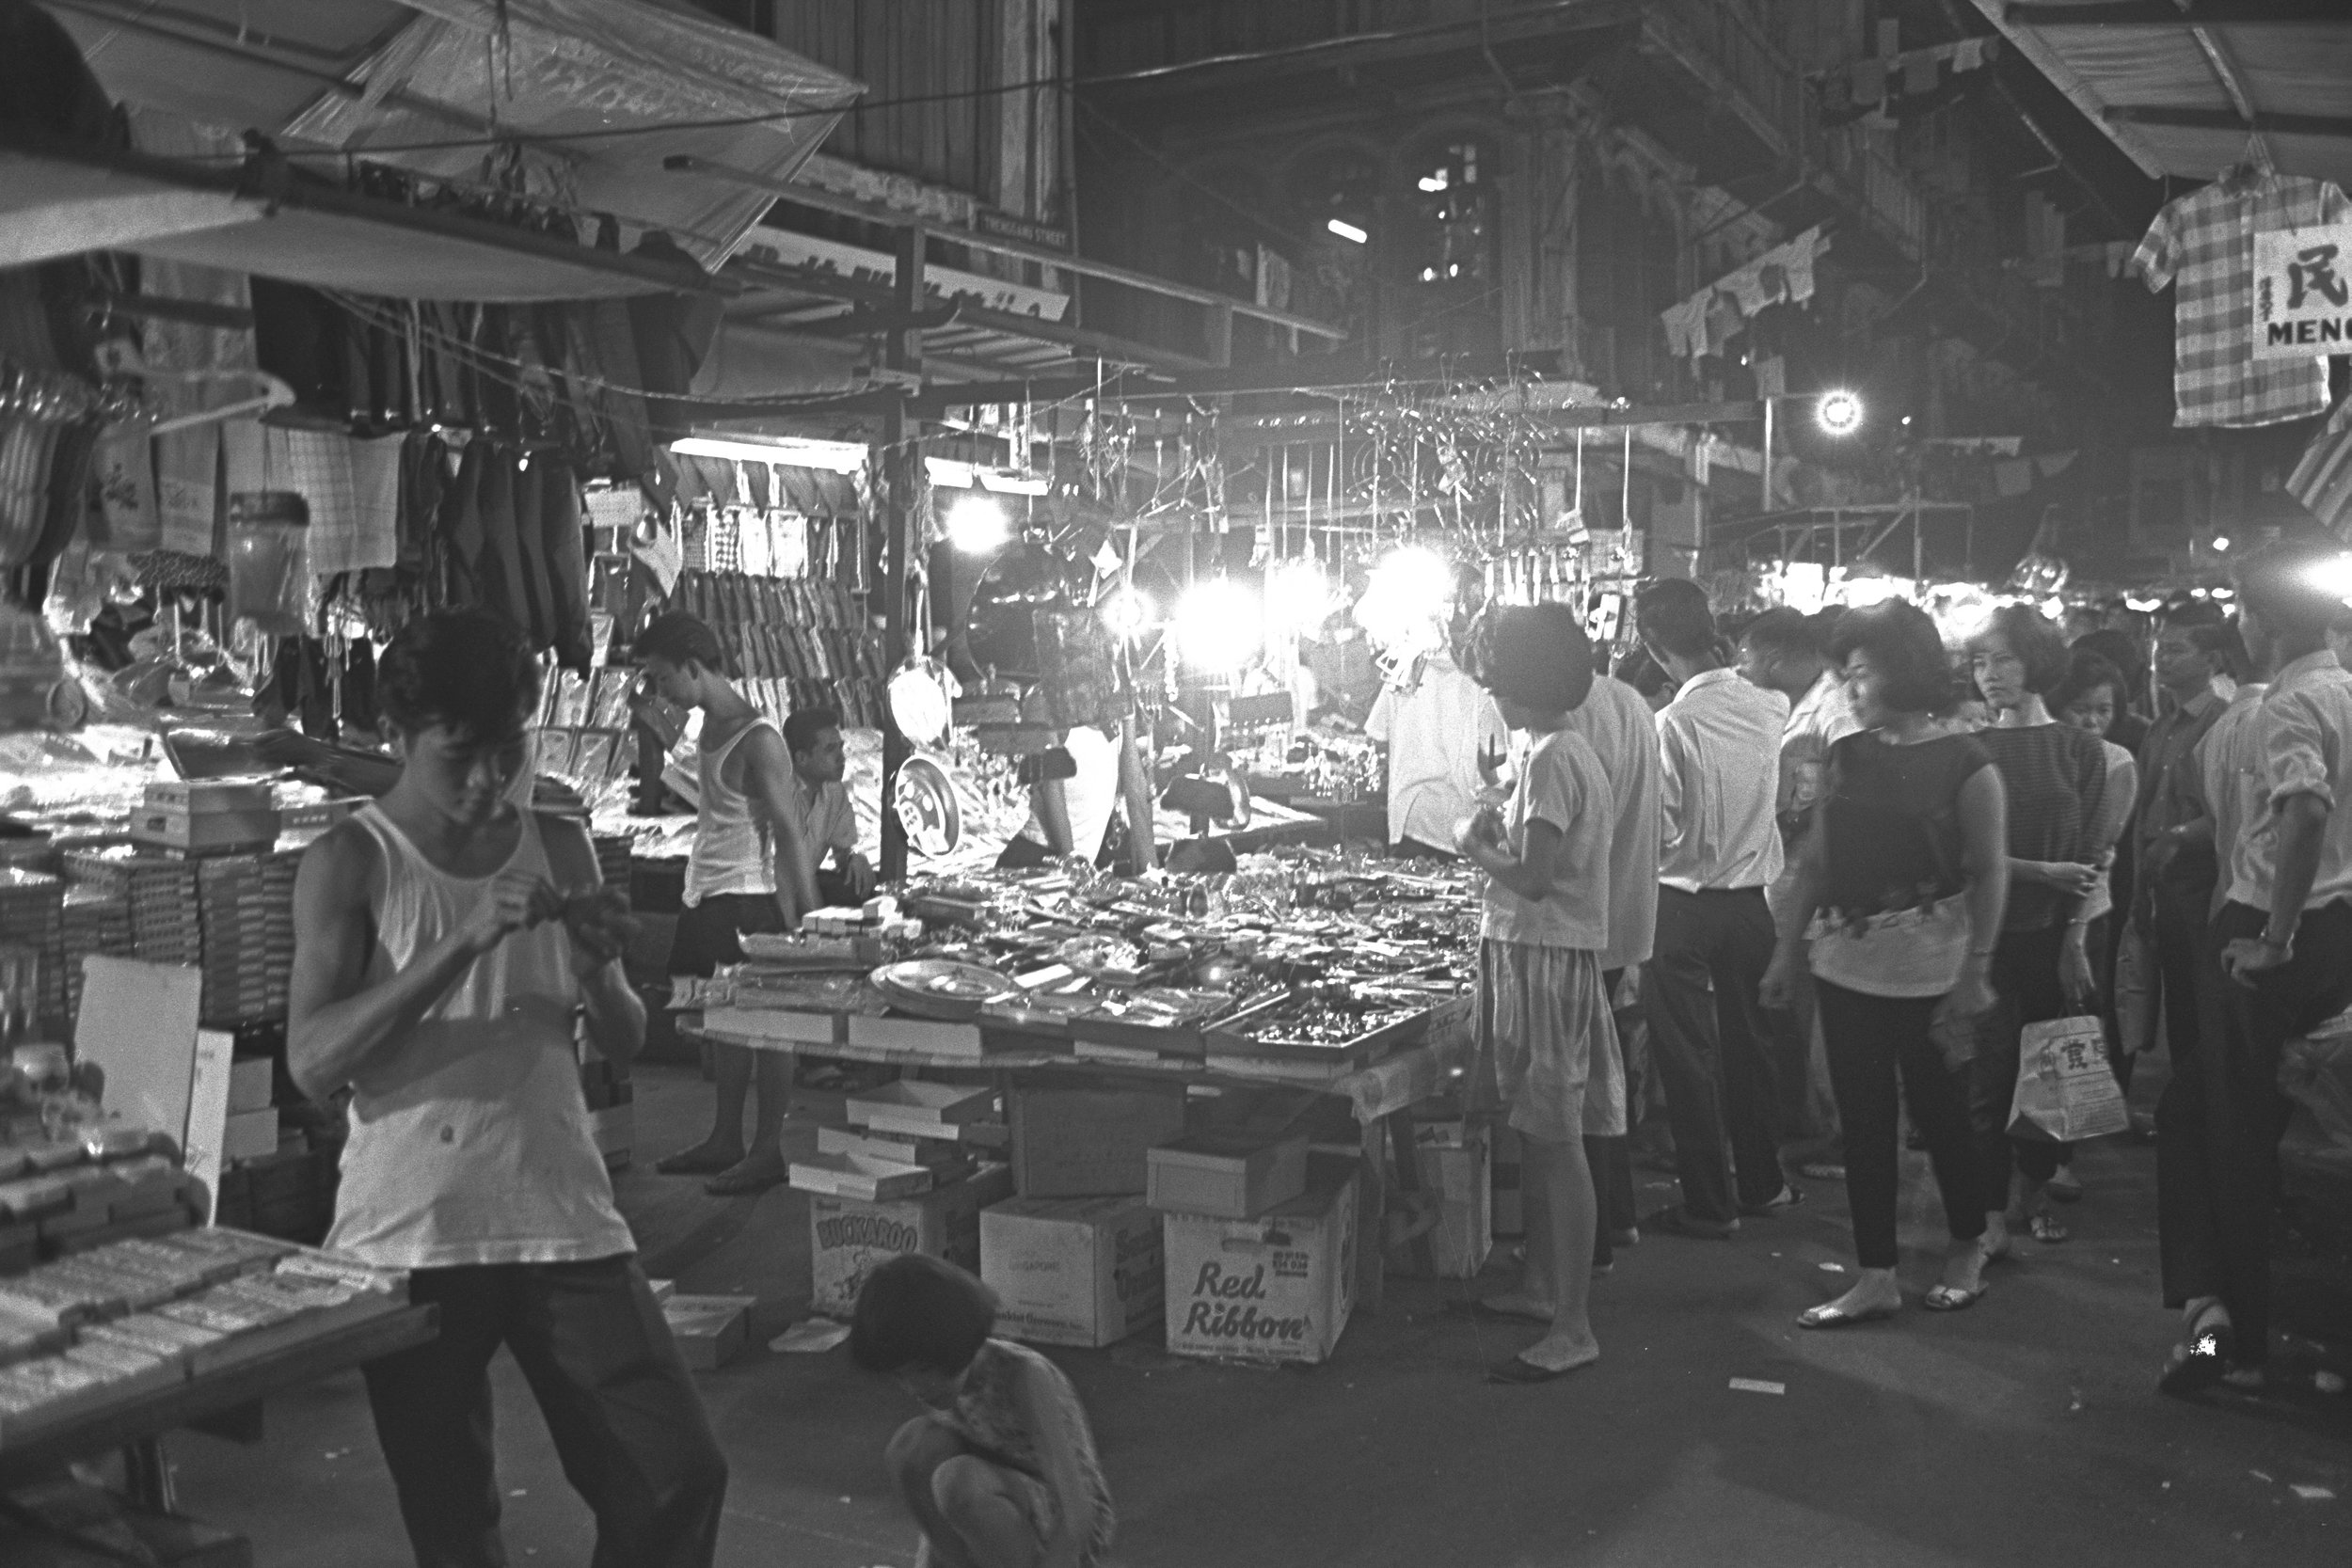 A night market in the same area, 1965. Both photographs courtesy of National Archives of Singapore.